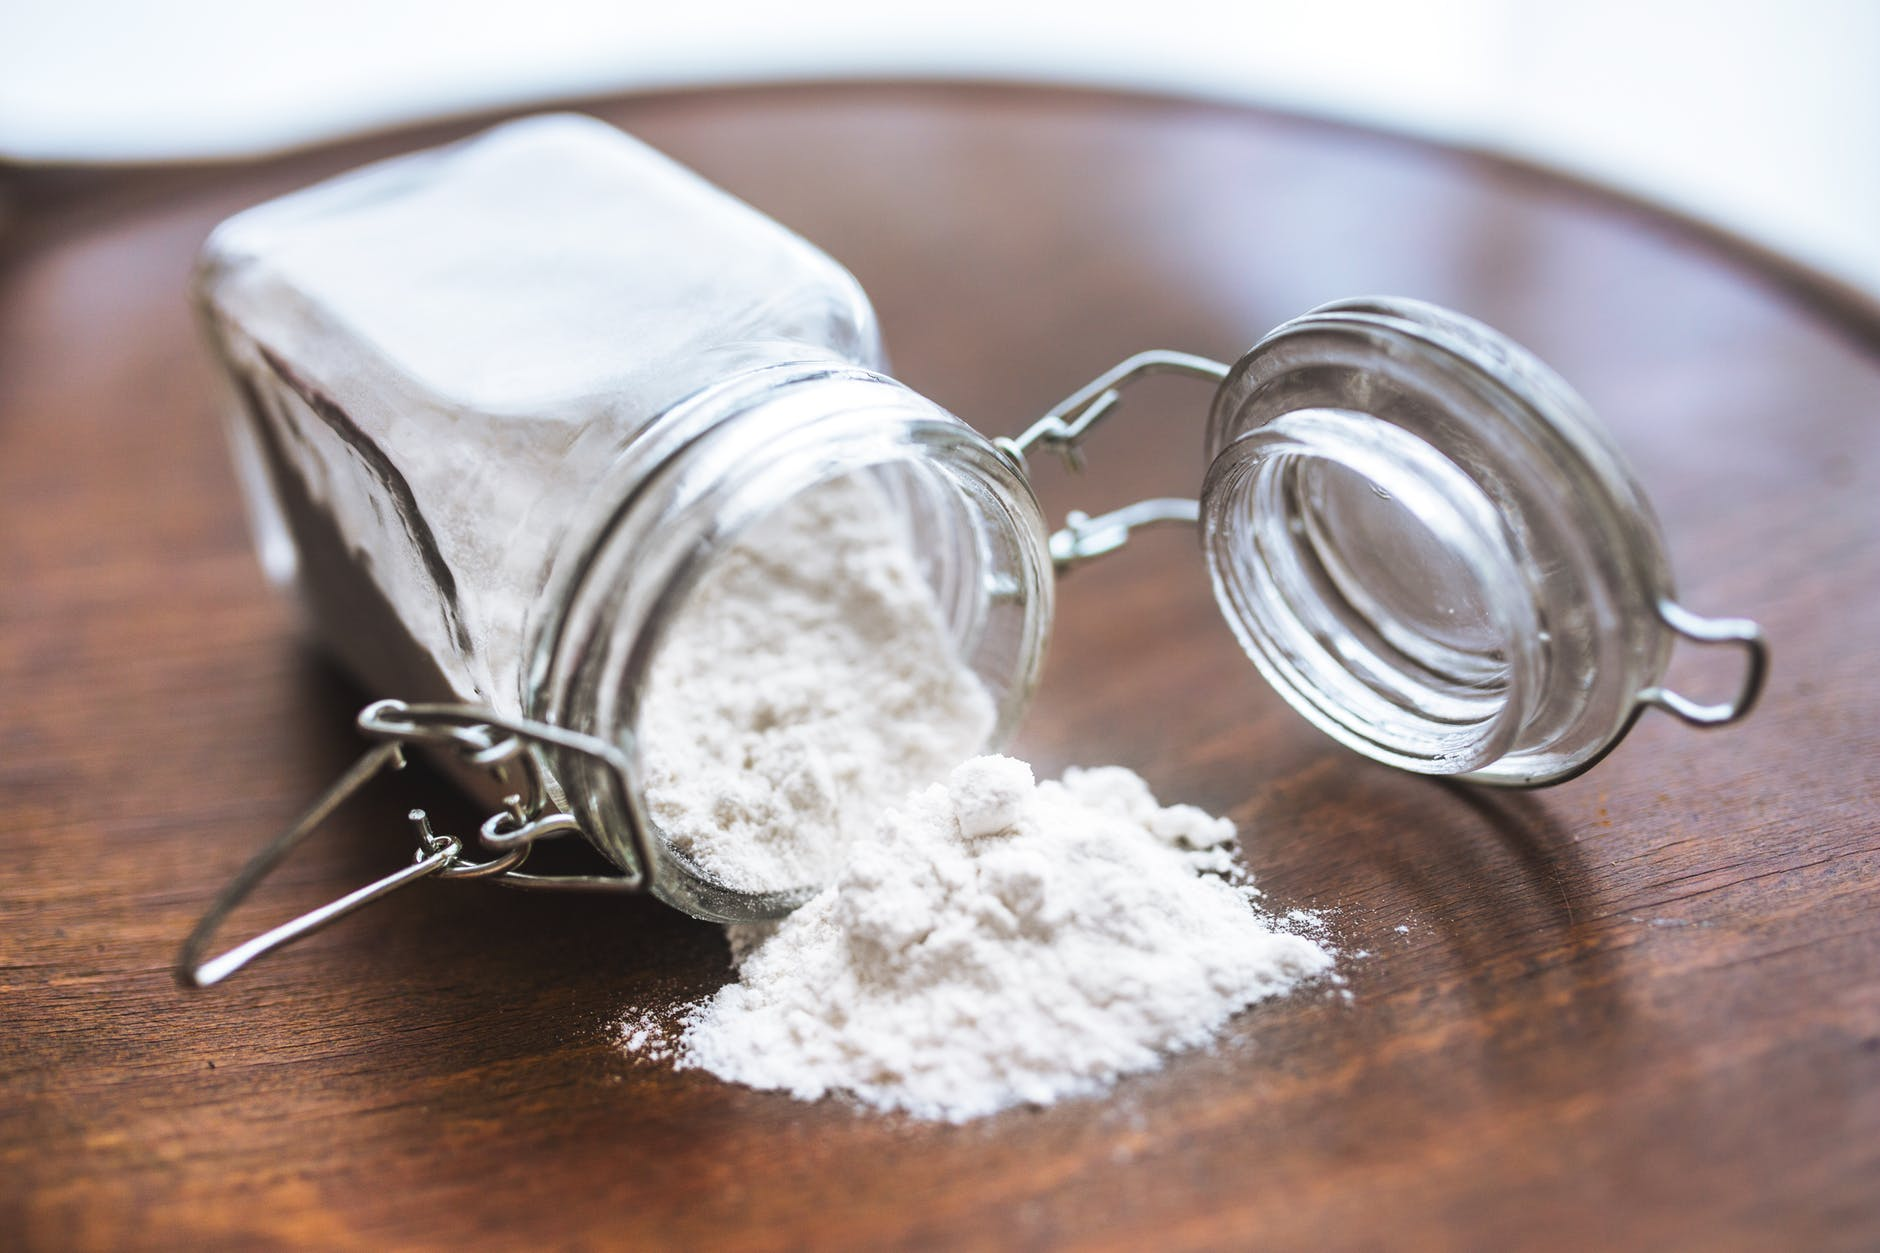 Milk Powder Market 2019-2027 Insights, Growth Predictions, Key Development Strategies and Key Players – ALPEN FOOD GROUP B.V., Arla Foods amba, Dairy Farmers of America, Fonterra Co-operative Group